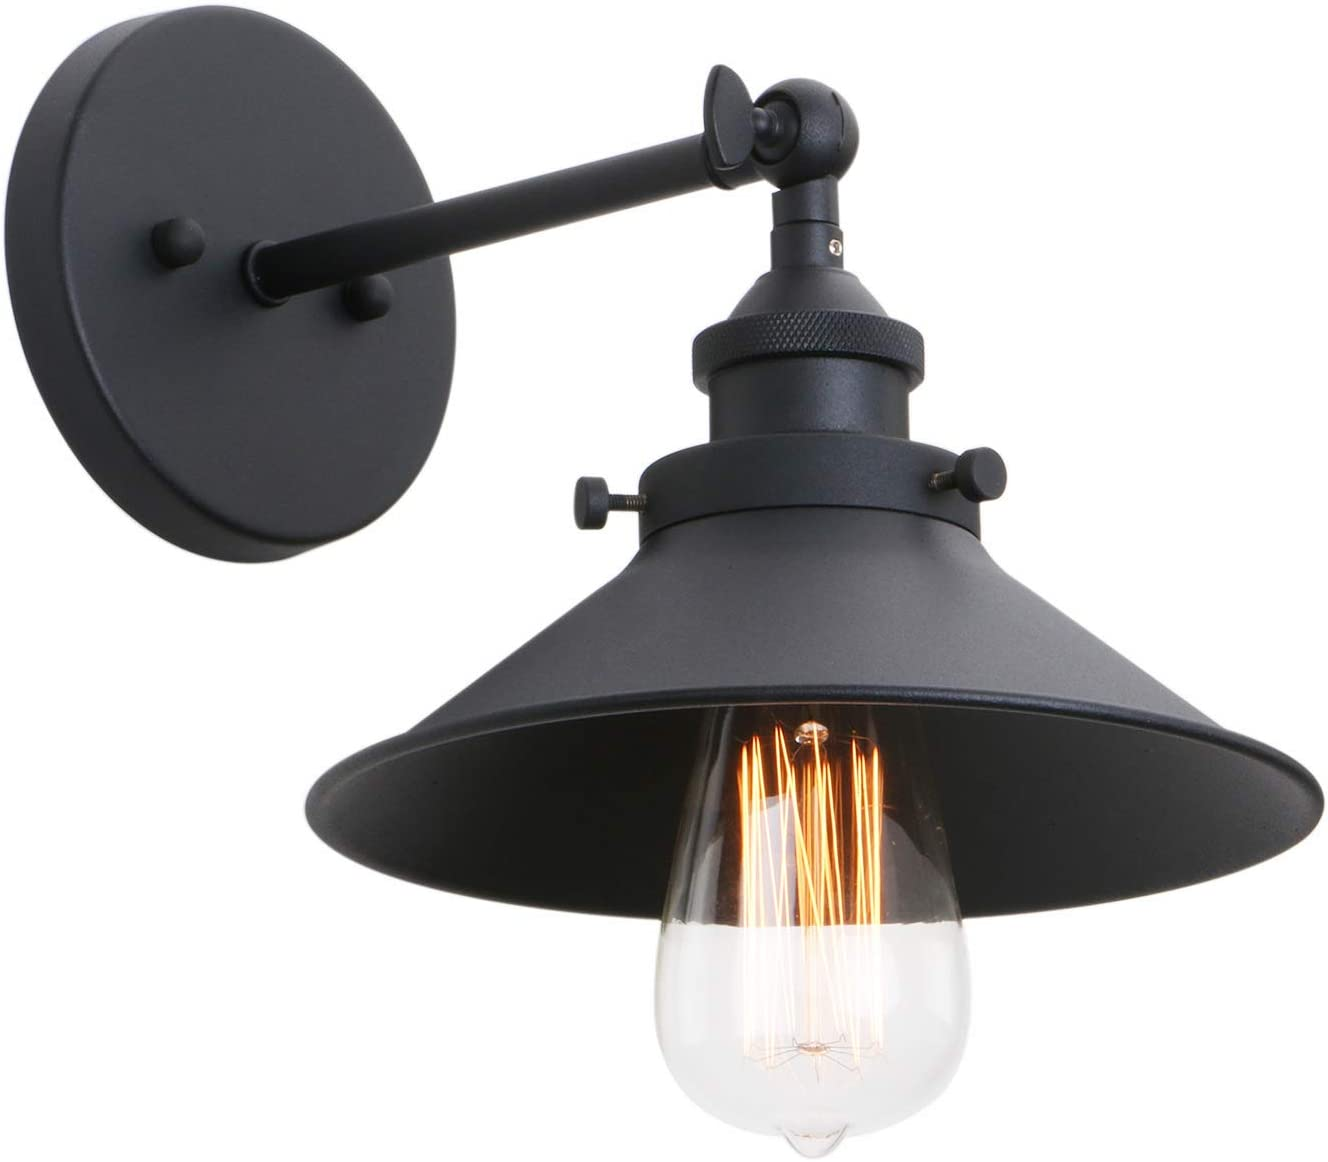 Phansthy Industrial Wall Sconce Light 7.87 Inches Vintage Style 1-Light Sconce Light Shade